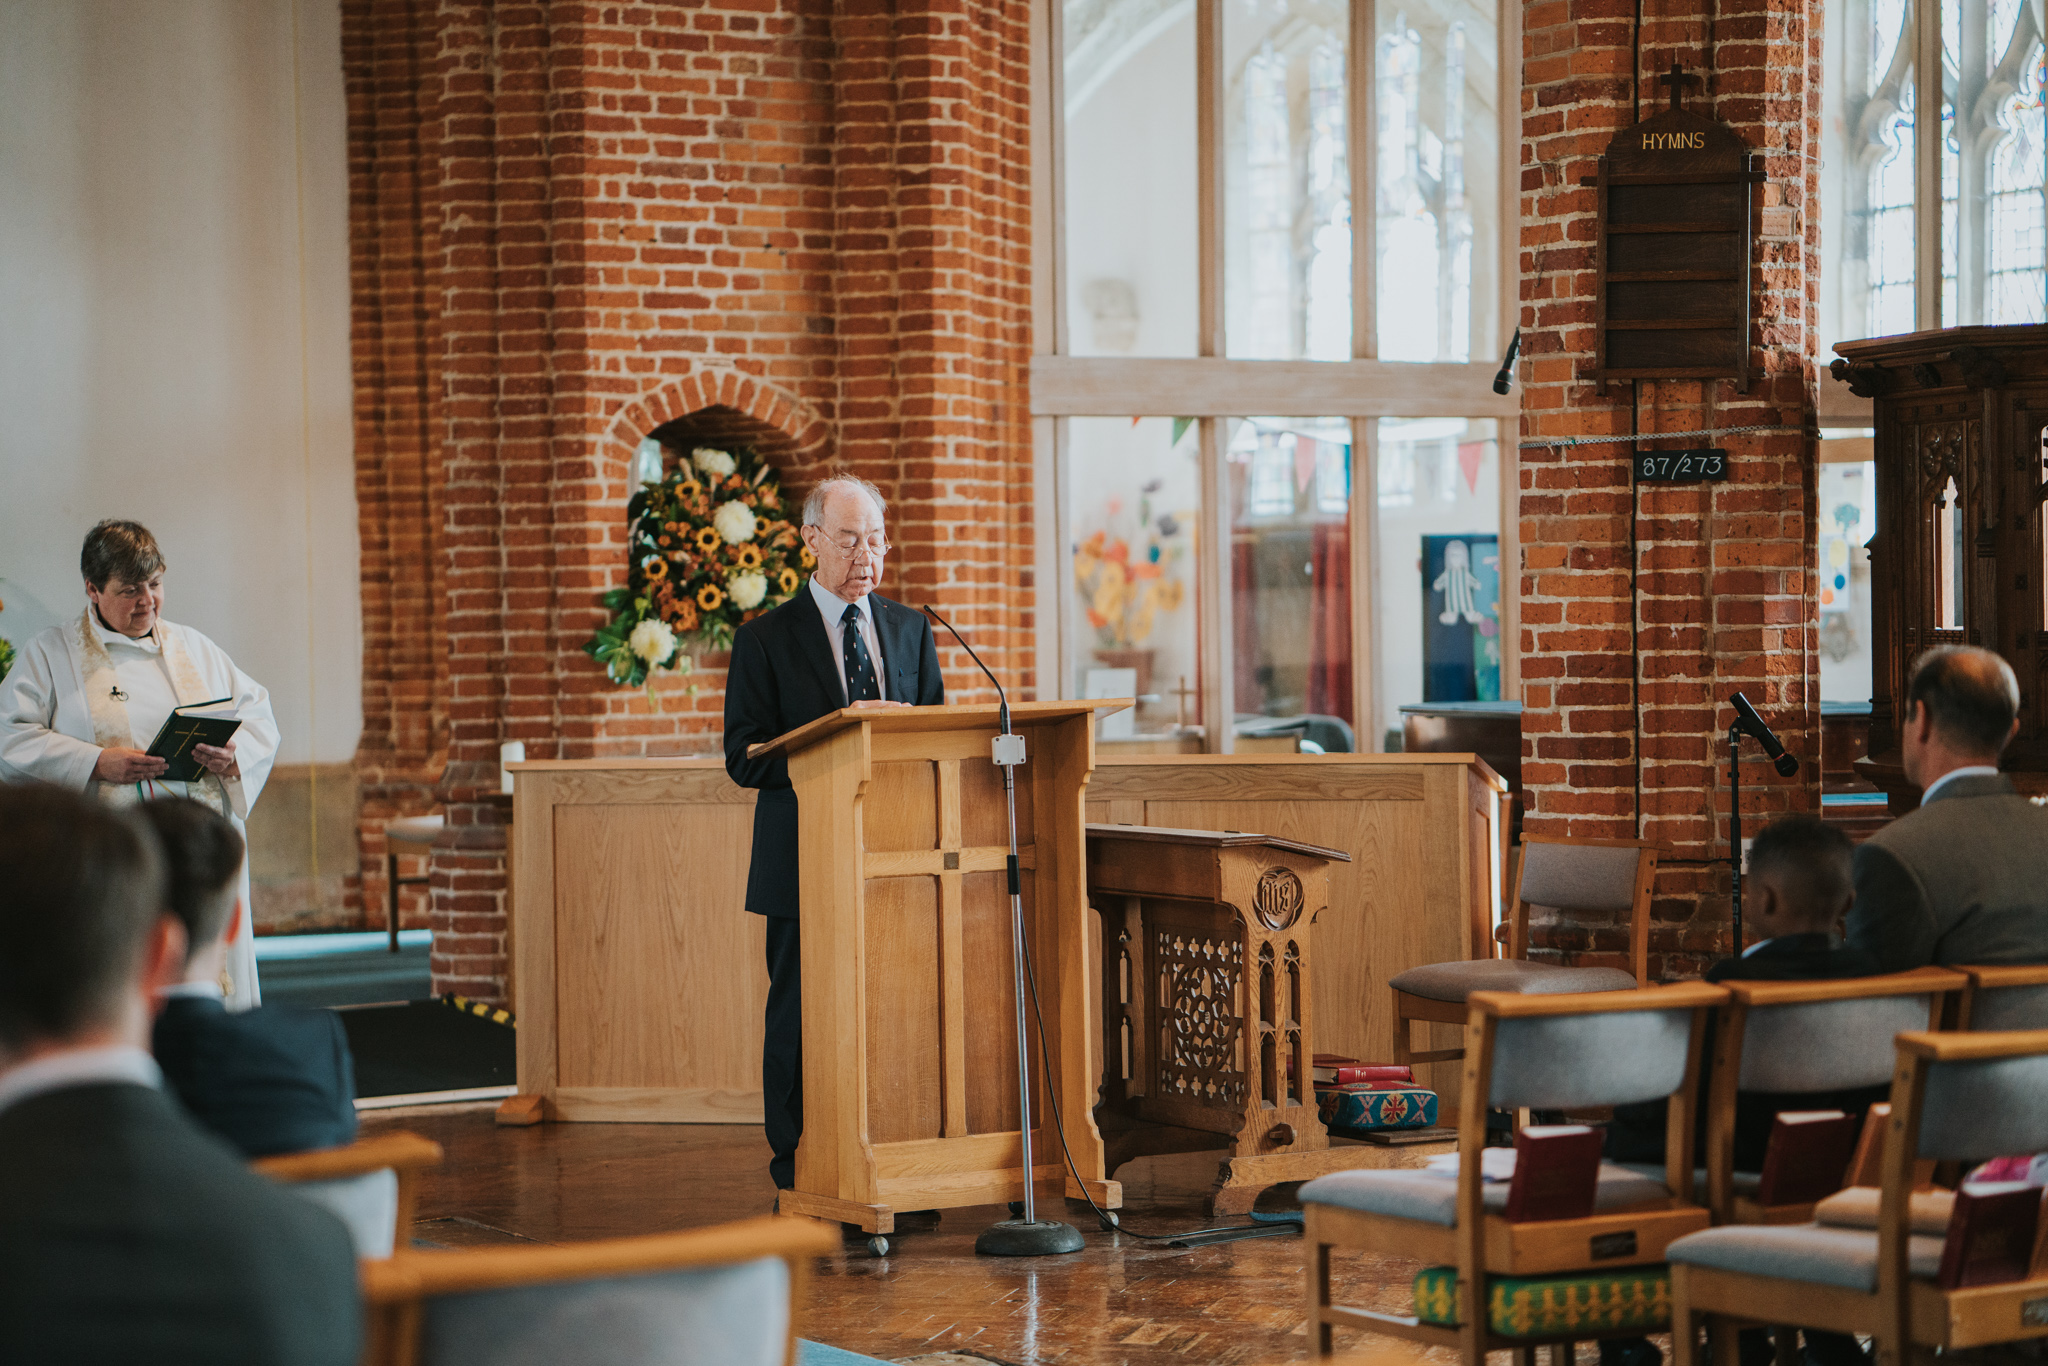 intimate-english-church-wedding-sarah-alex-colchester-essex-grace-elizabeth-colchester-essex-alternative-wedding-lifestyle-photographer-essex-suffolk-norfolk-devon (38 of 92).jpg